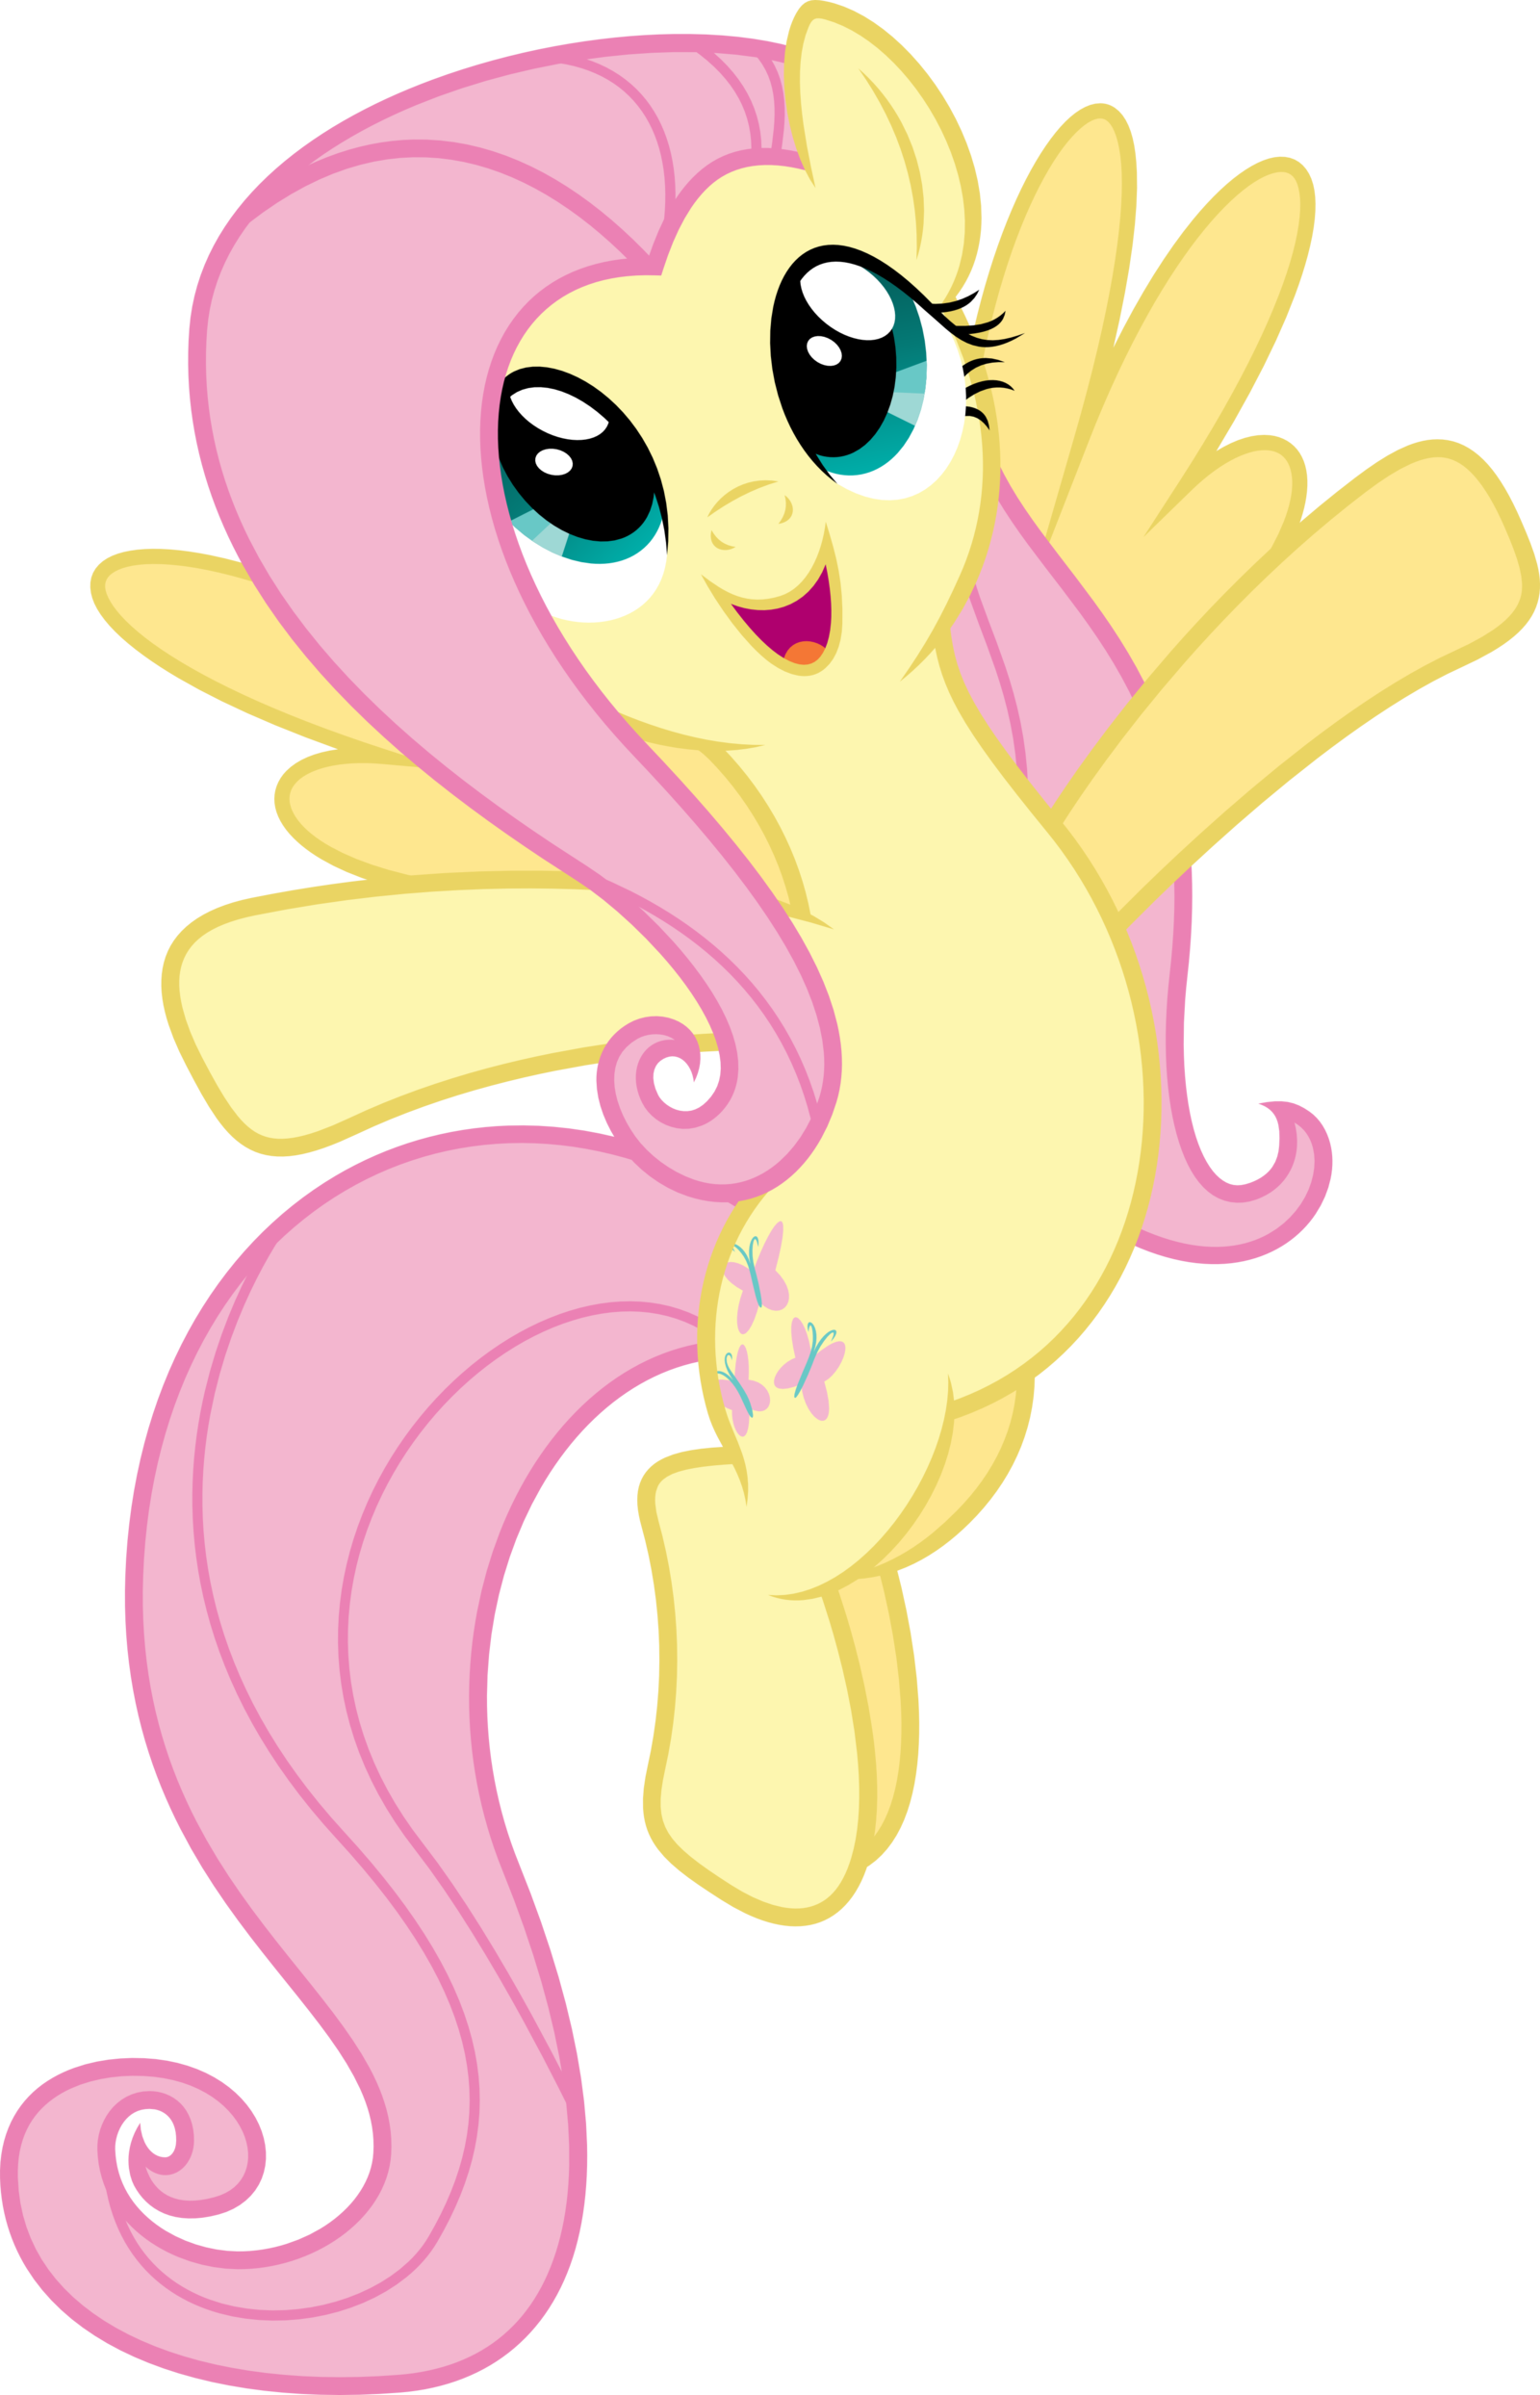 sig-3989624.fluttershy_7_by_xpesifeindx-d6qu3l3.png